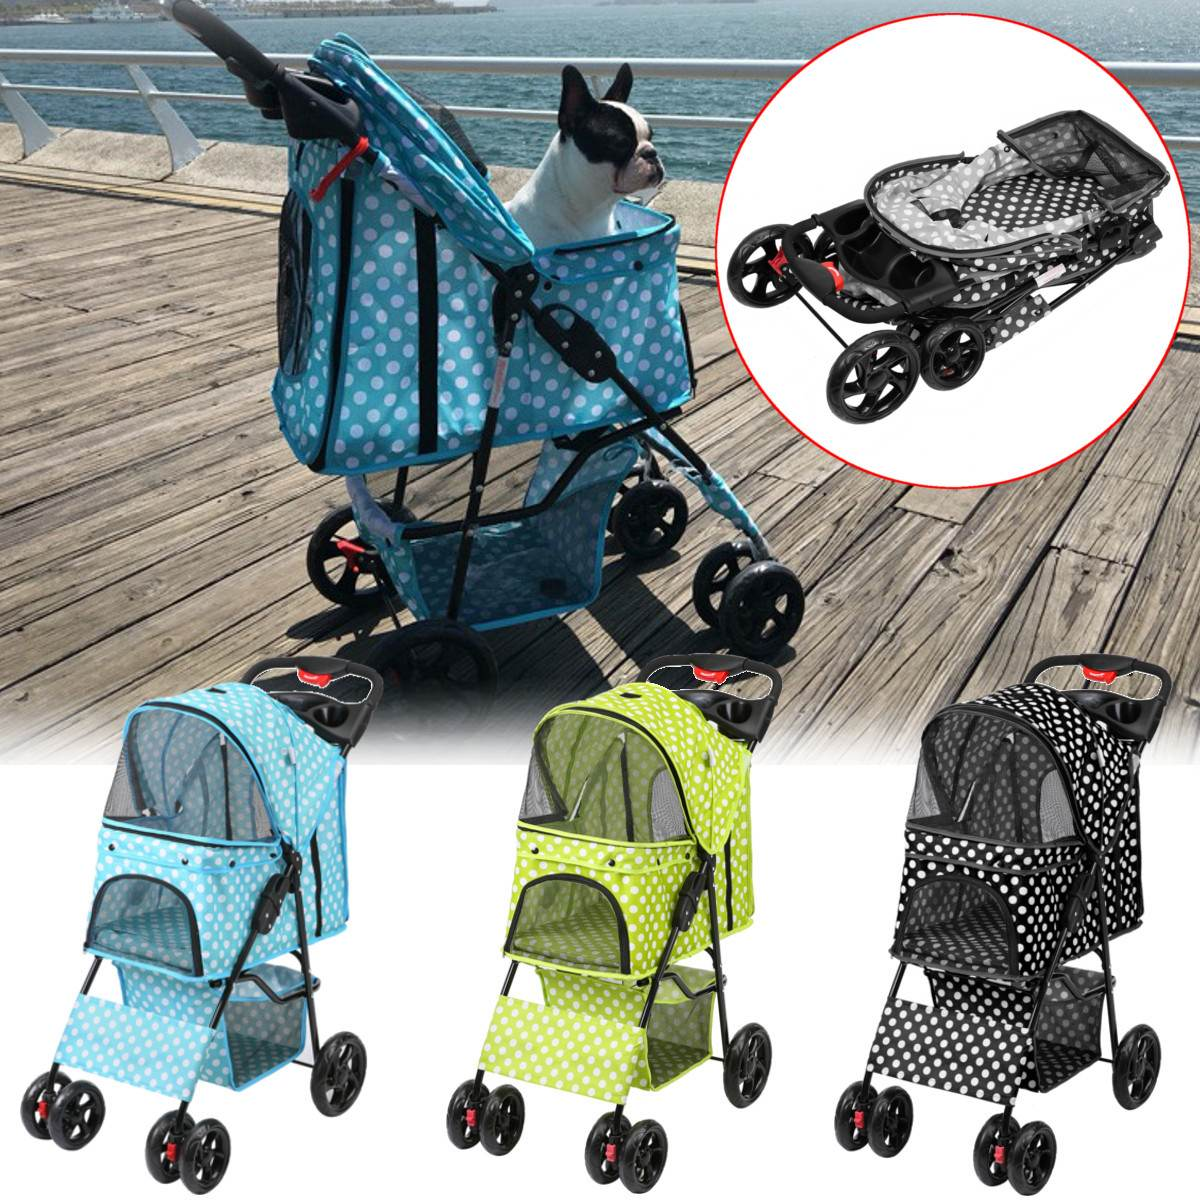 3 Colors Pet Stroller Sitting Lying Foldable Lightweight Pushchair Stroller Cart Cat Dog Pet Carriers Bag